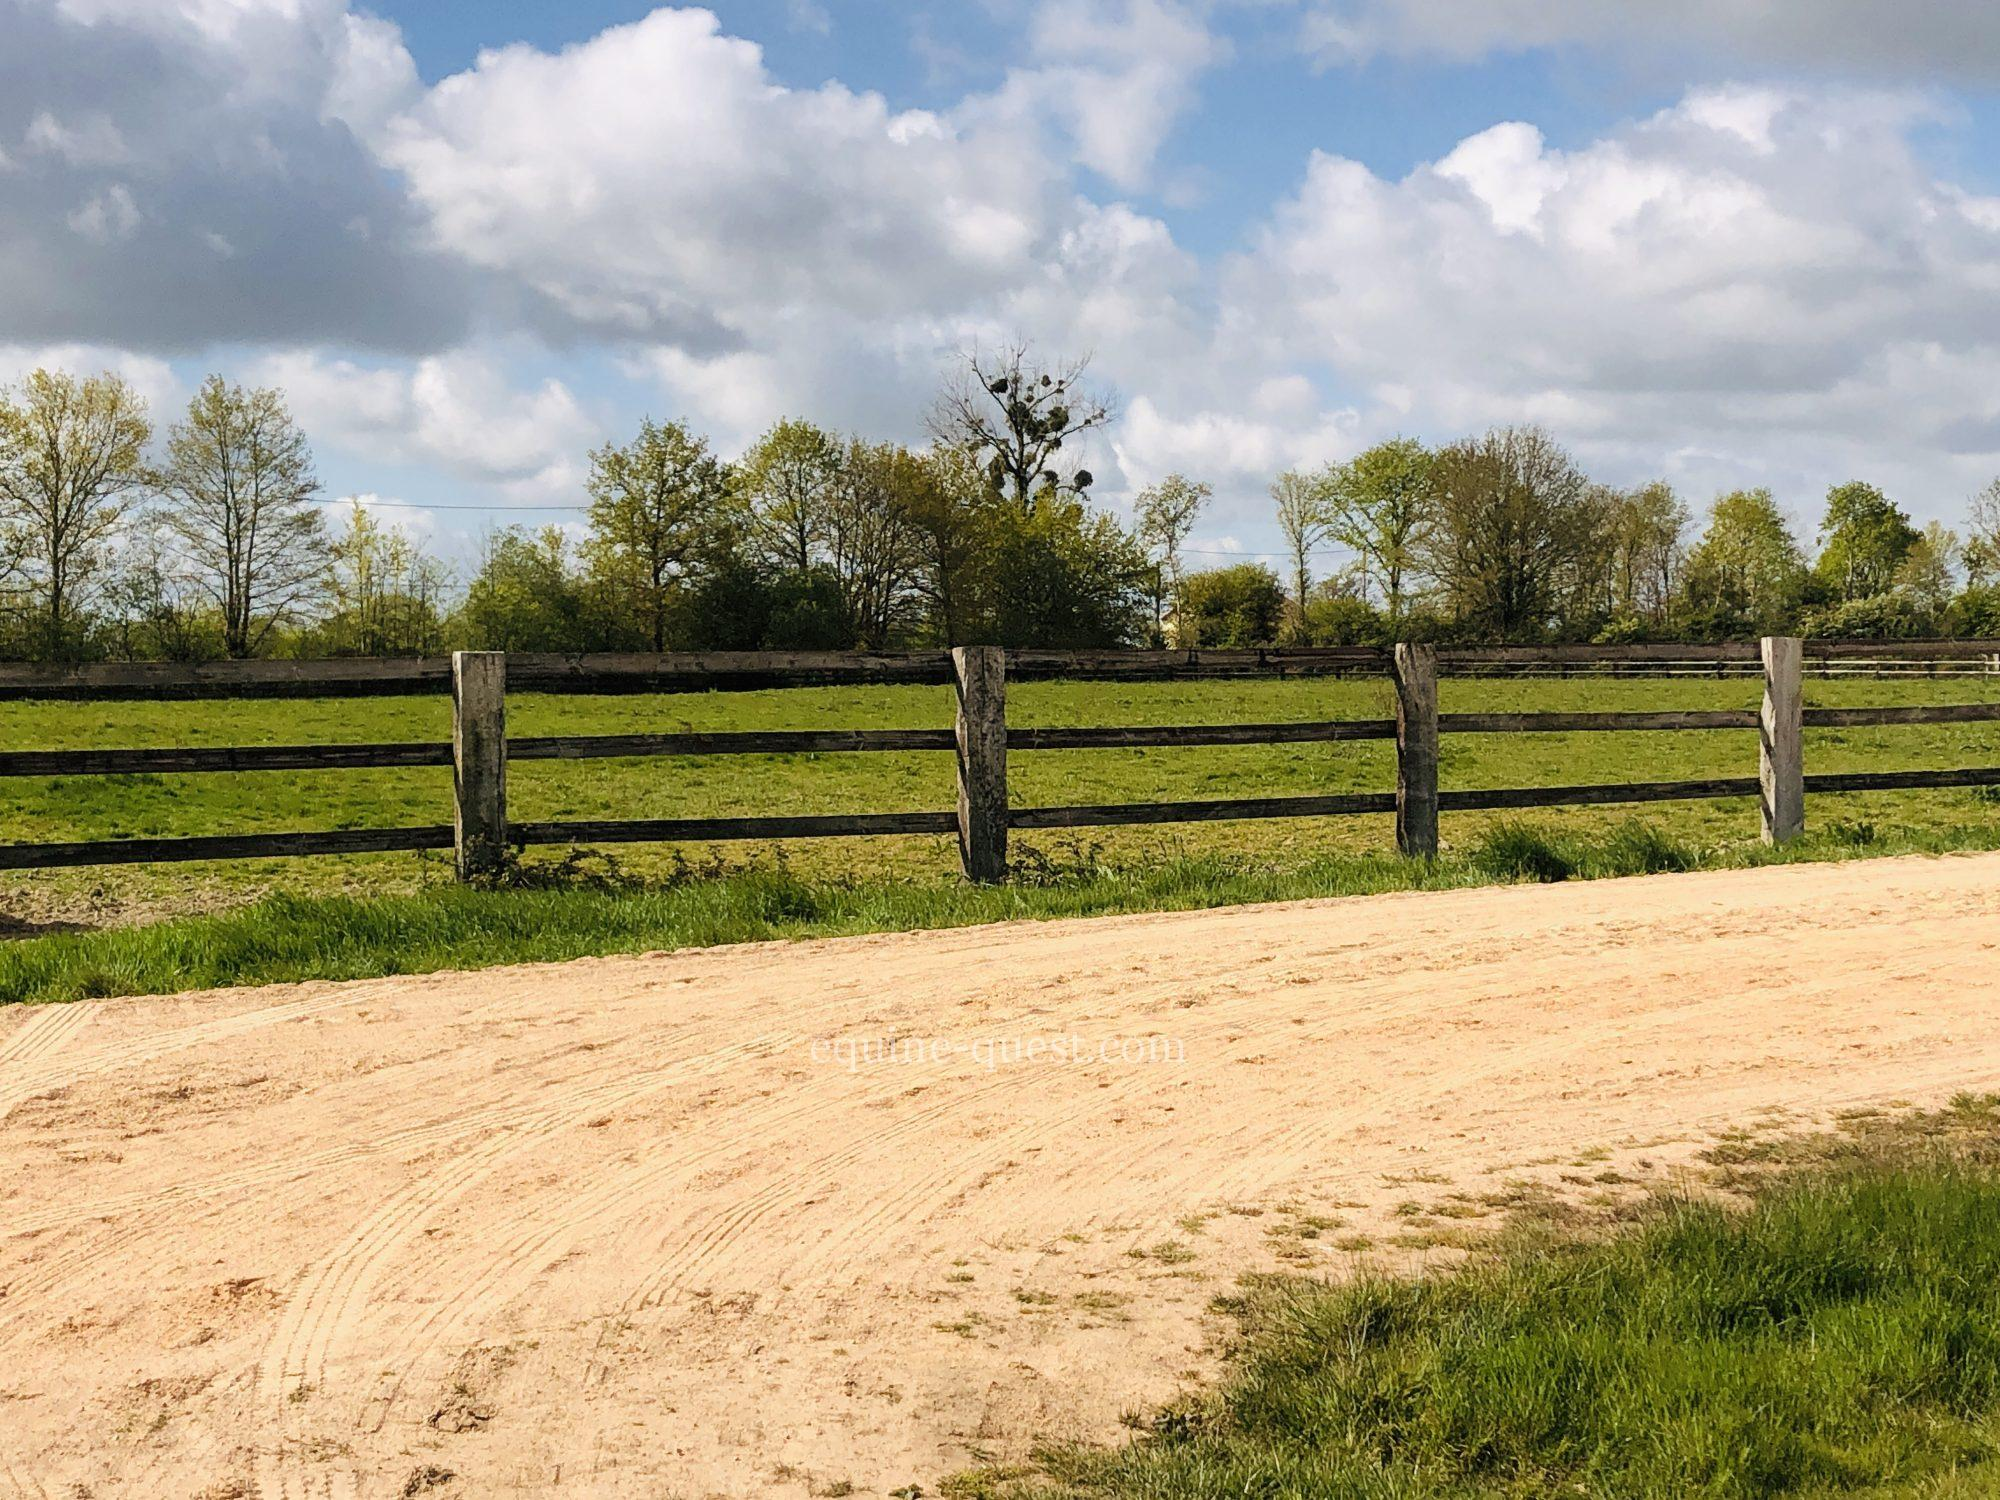 Training center- Pays d'Auge area- 12 hectares